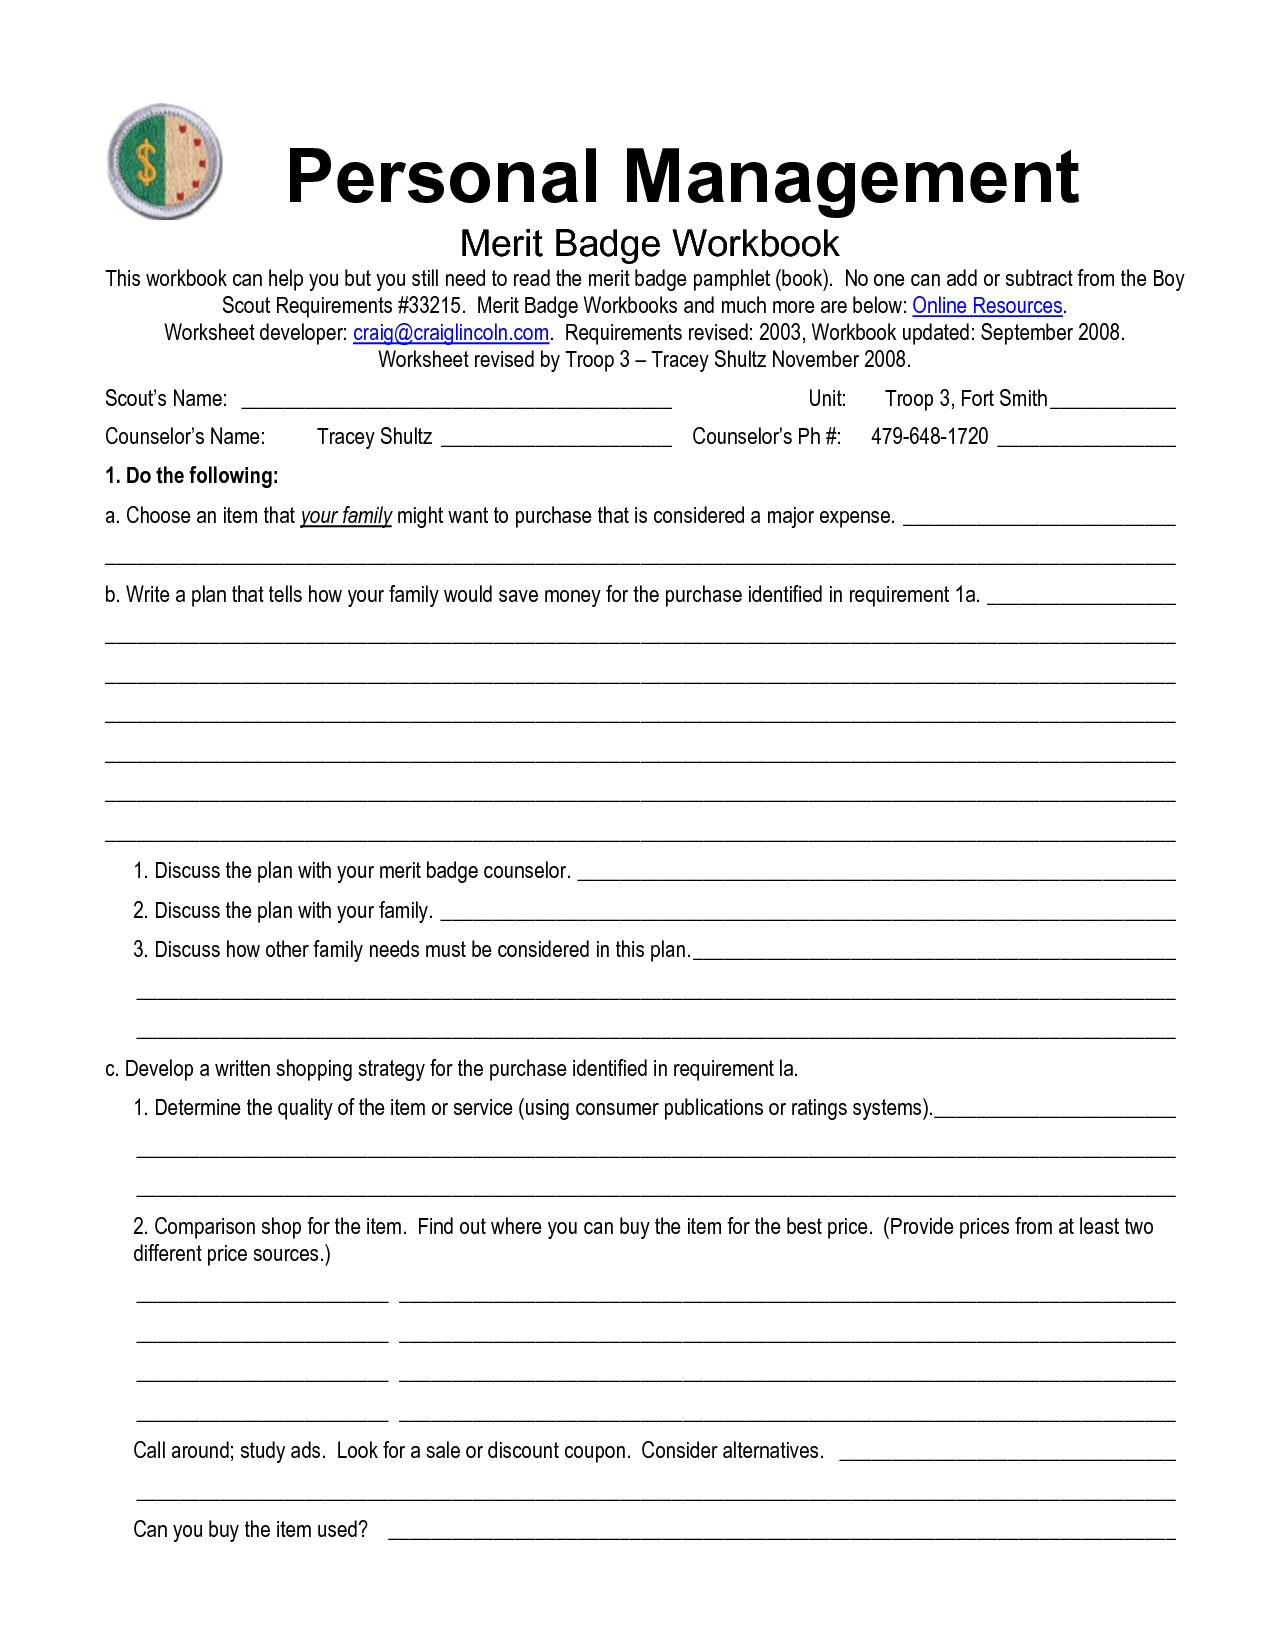 5 Best Images Of Boy Scout Merit Badge Worksheets